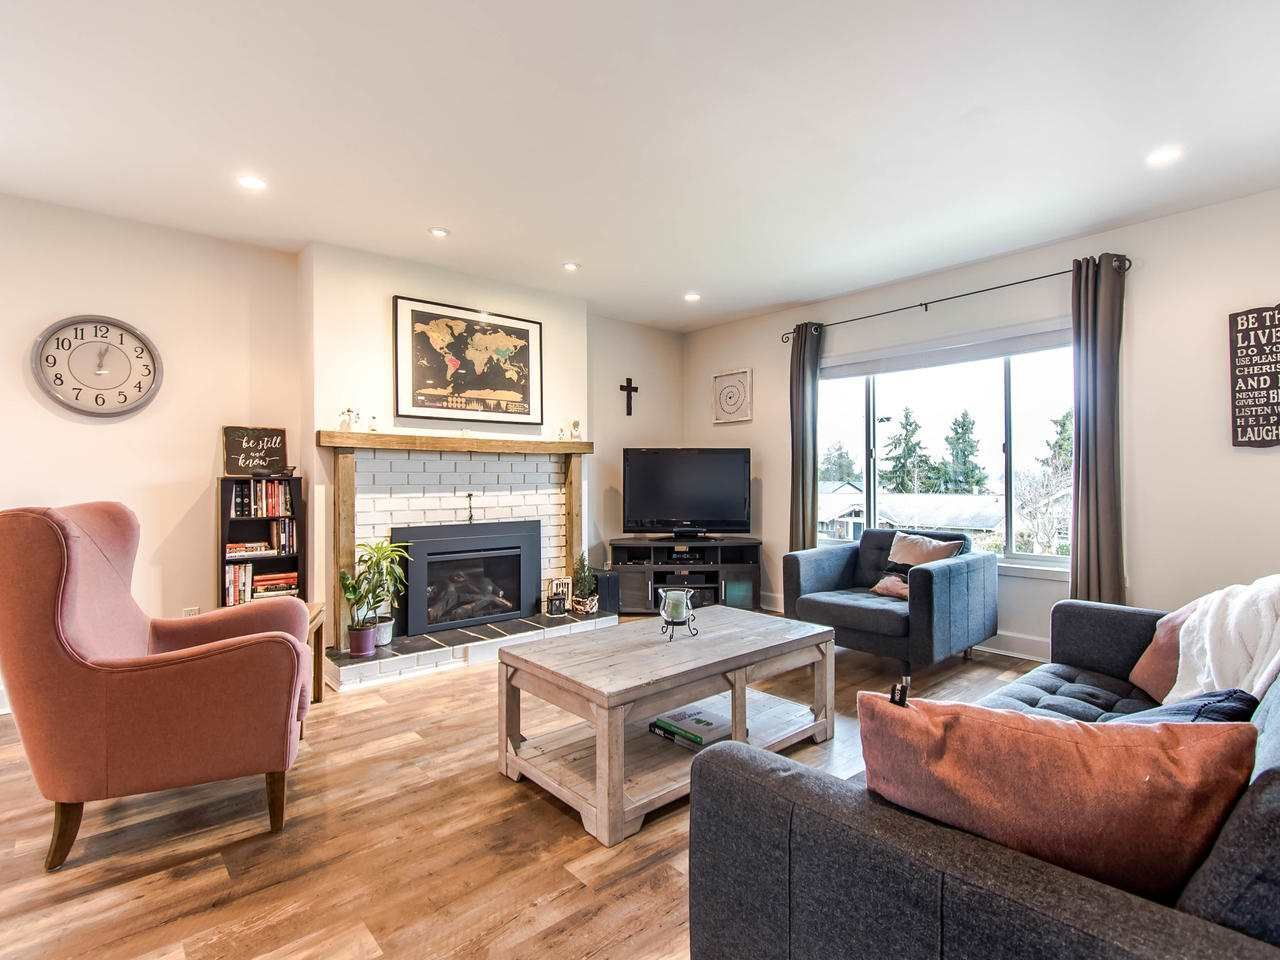 """Photo 2: Photos: 21744 48A Avenue in Langley: Murrayville House for sale in """"MURRAYVILLE"""" : MLS®# R2451789"""